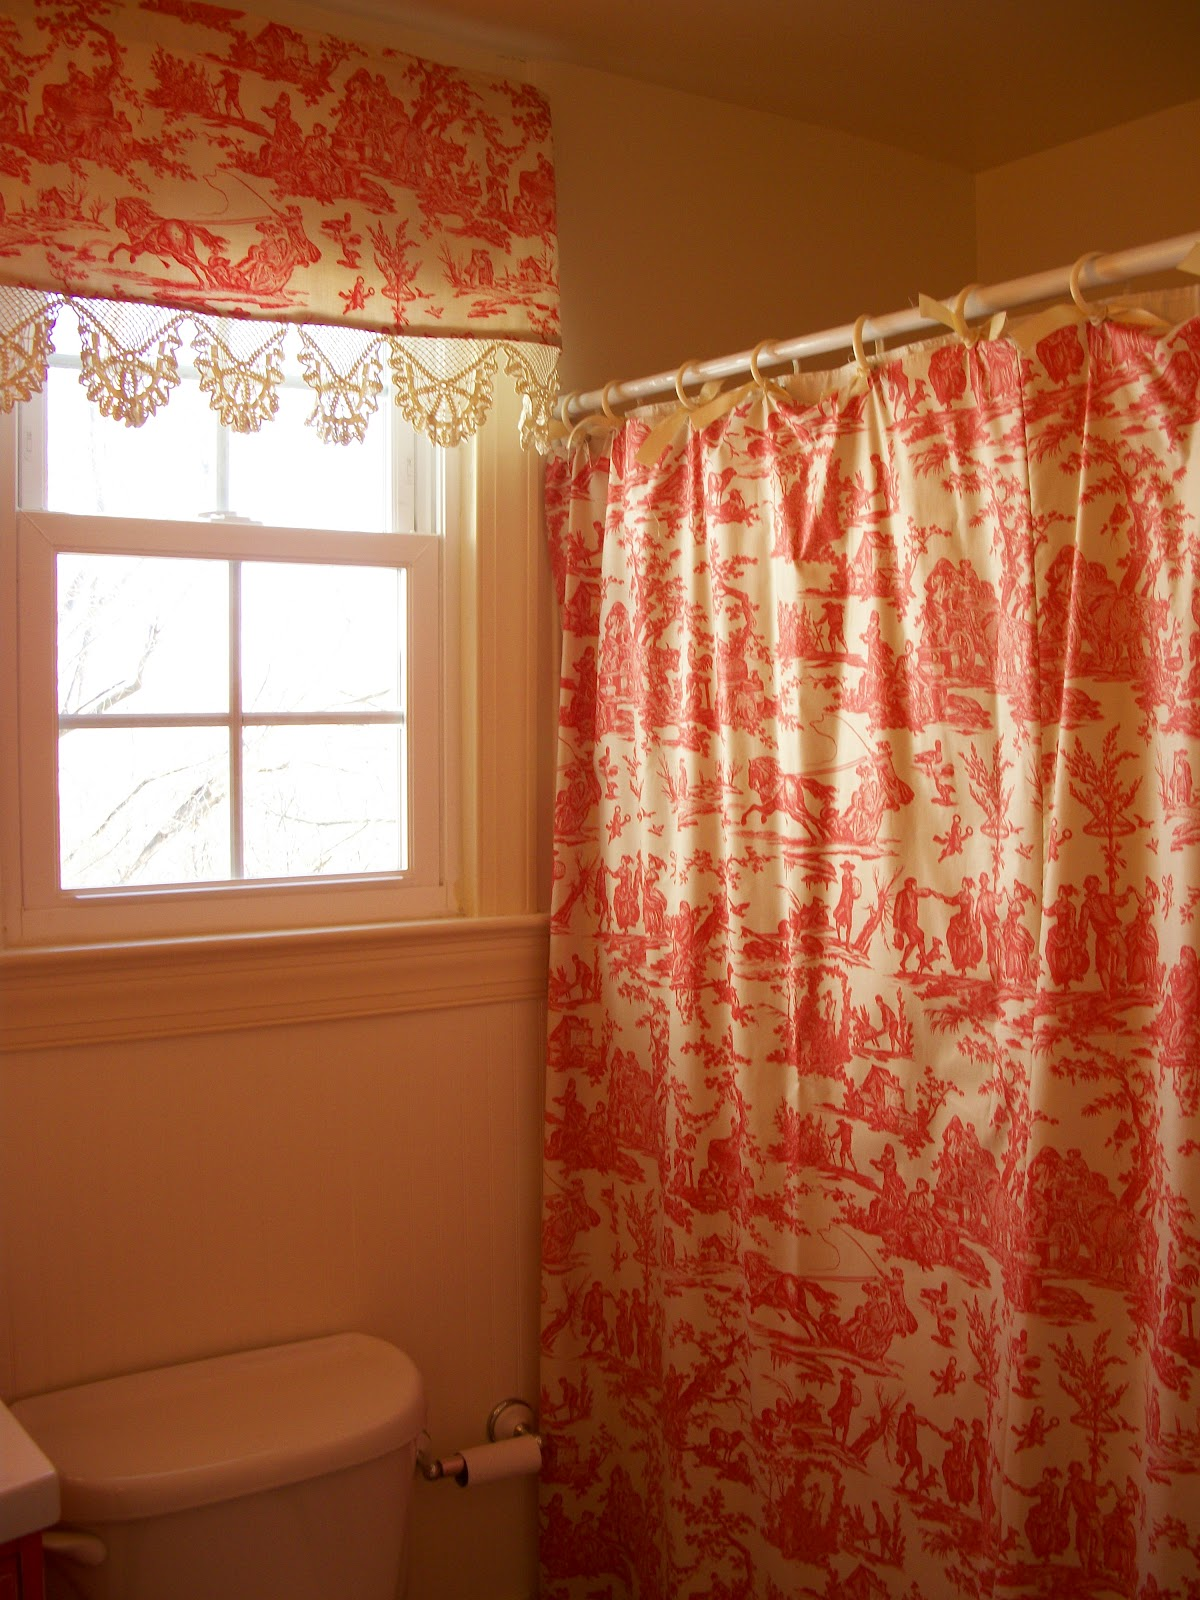 Shower And Window Curtain Sets Bathroom Window Curtains With Matching Shower Curtain My Web Value